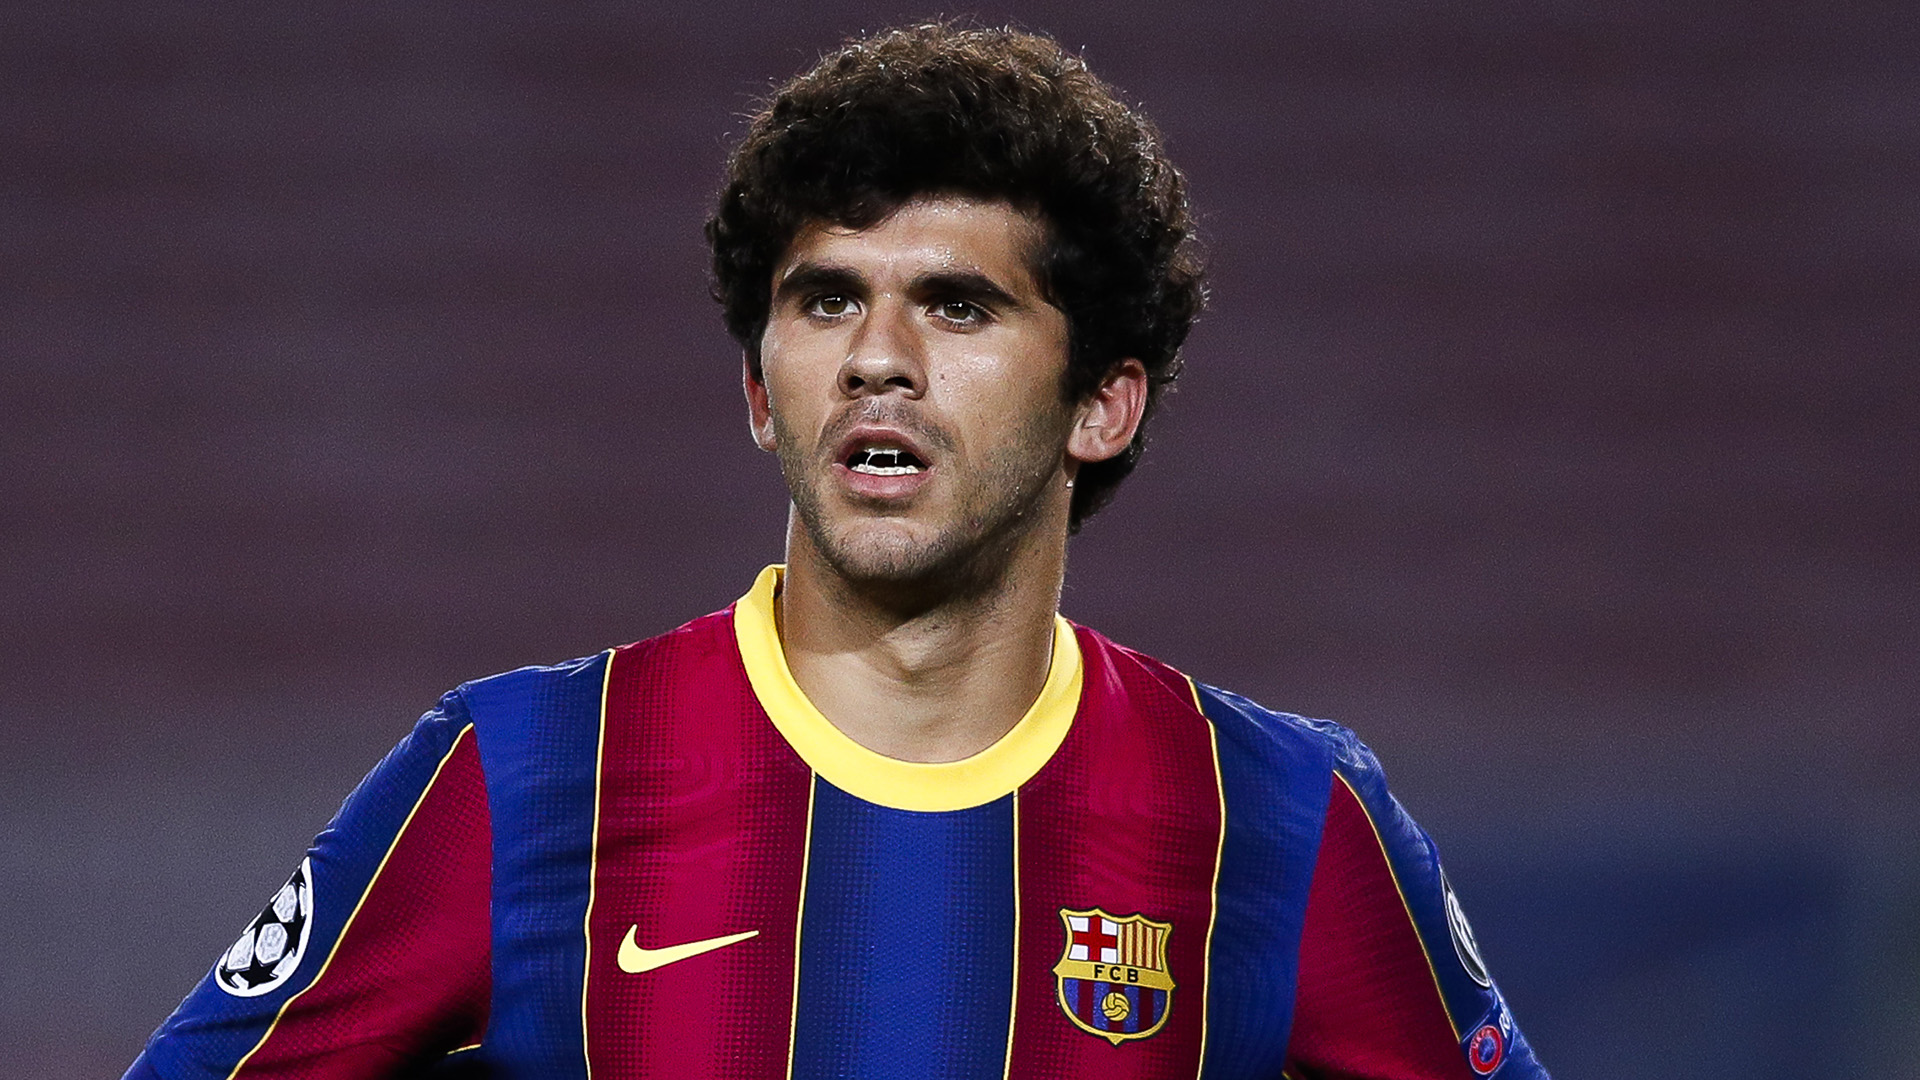 Barcelona send Alena out on loan to Getafe until the end of the season